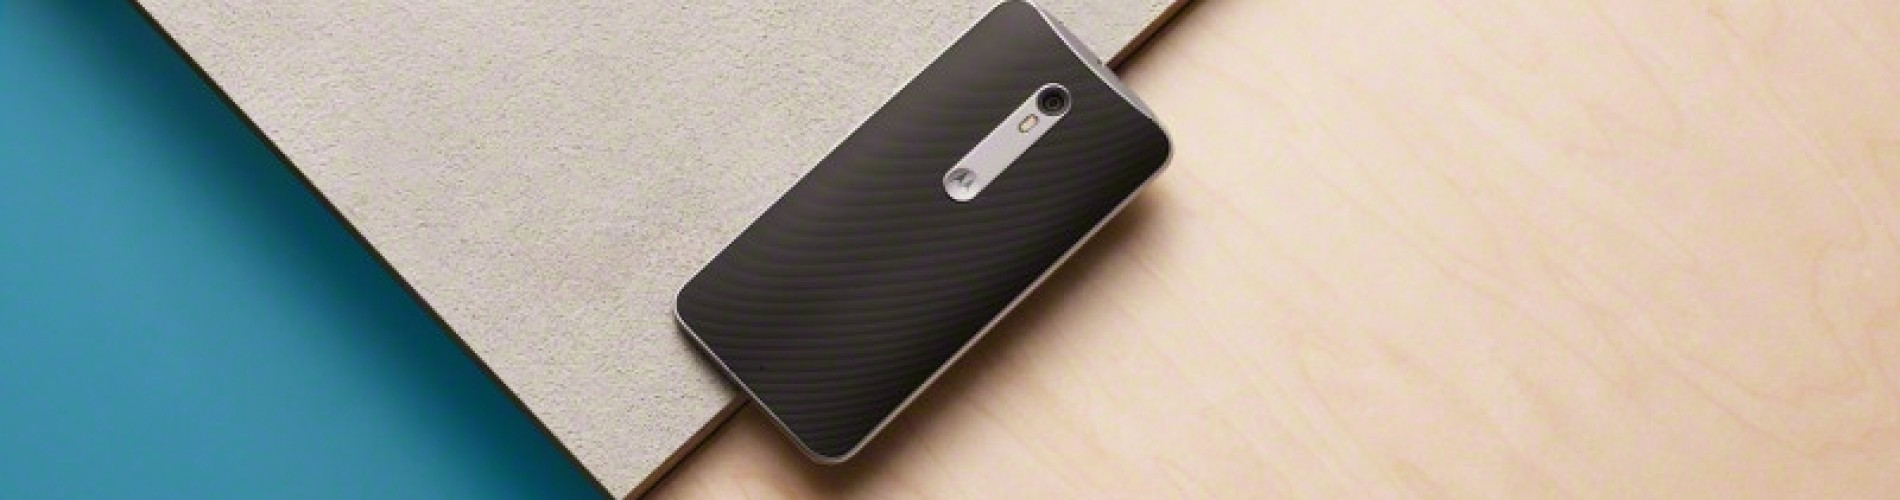 Sidestepping the carriers: Is Motorola in the right direction?